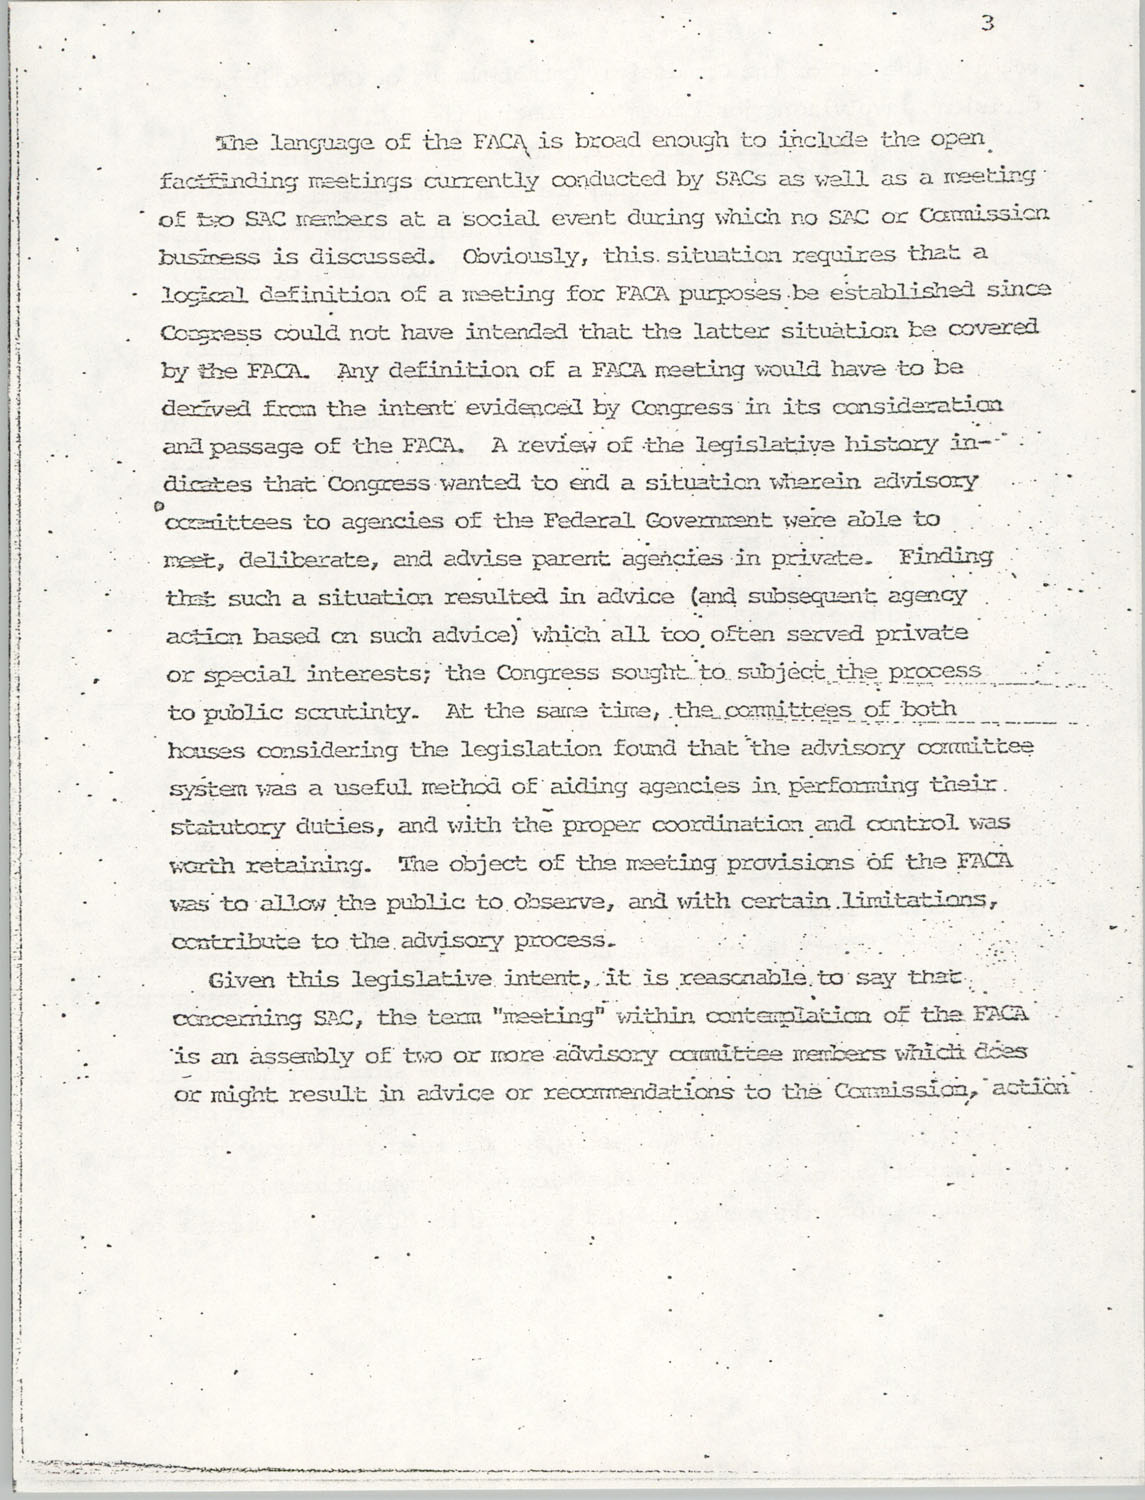 Memorandum from Lawrence B. Glick to Isaiah T. Creswell, August 7, 1975, Page 3